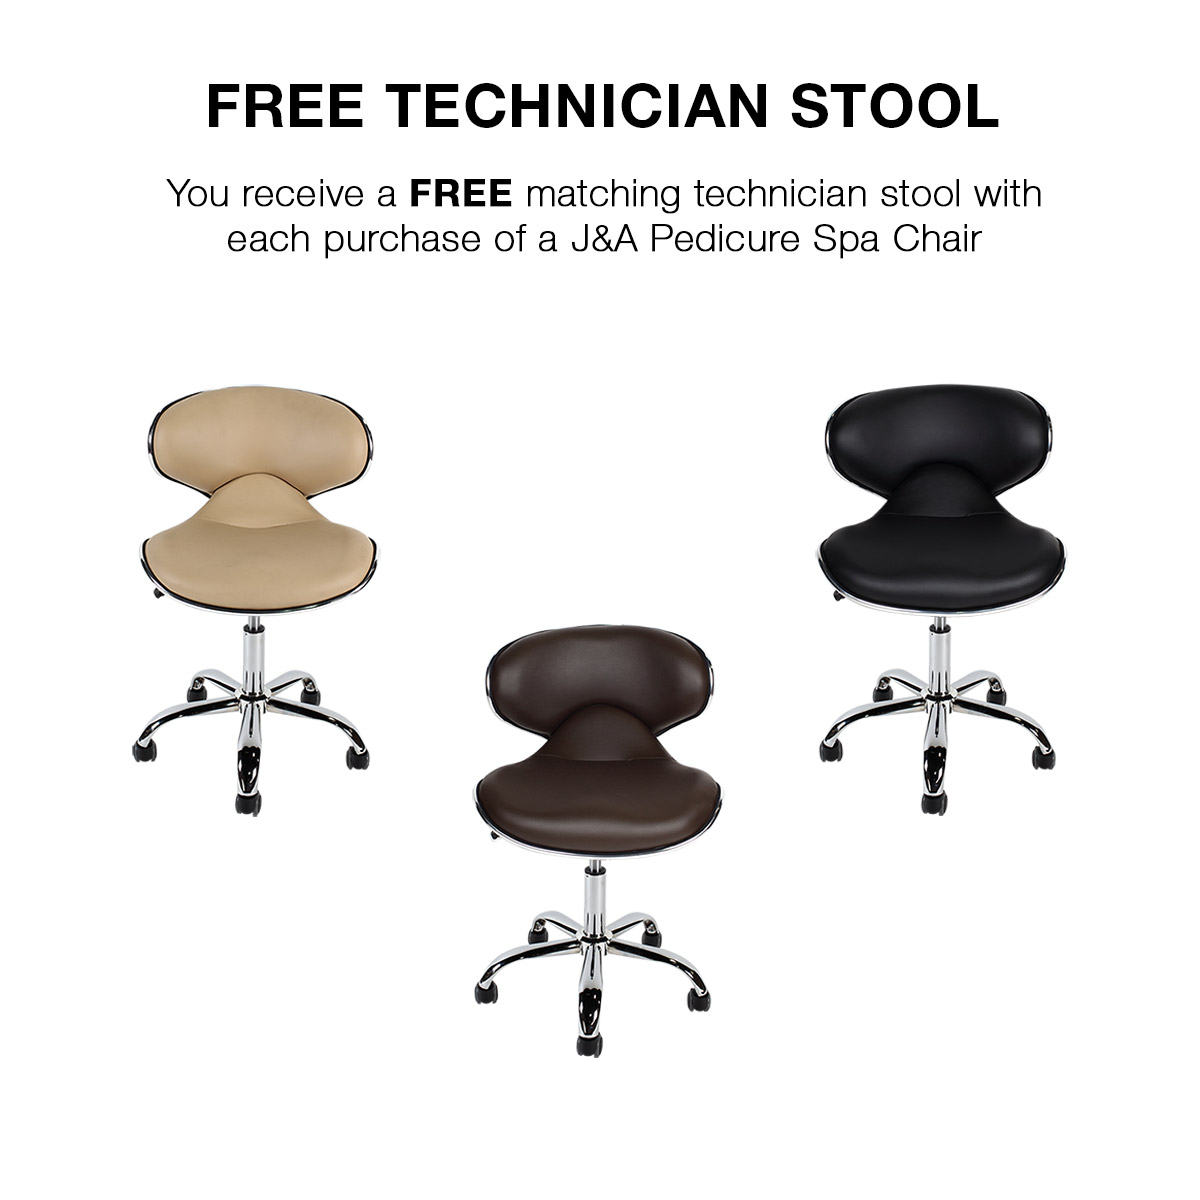 J & A Petra RMX Pipeless Whirlpool Pedicure Spa Chair alternative product image 3